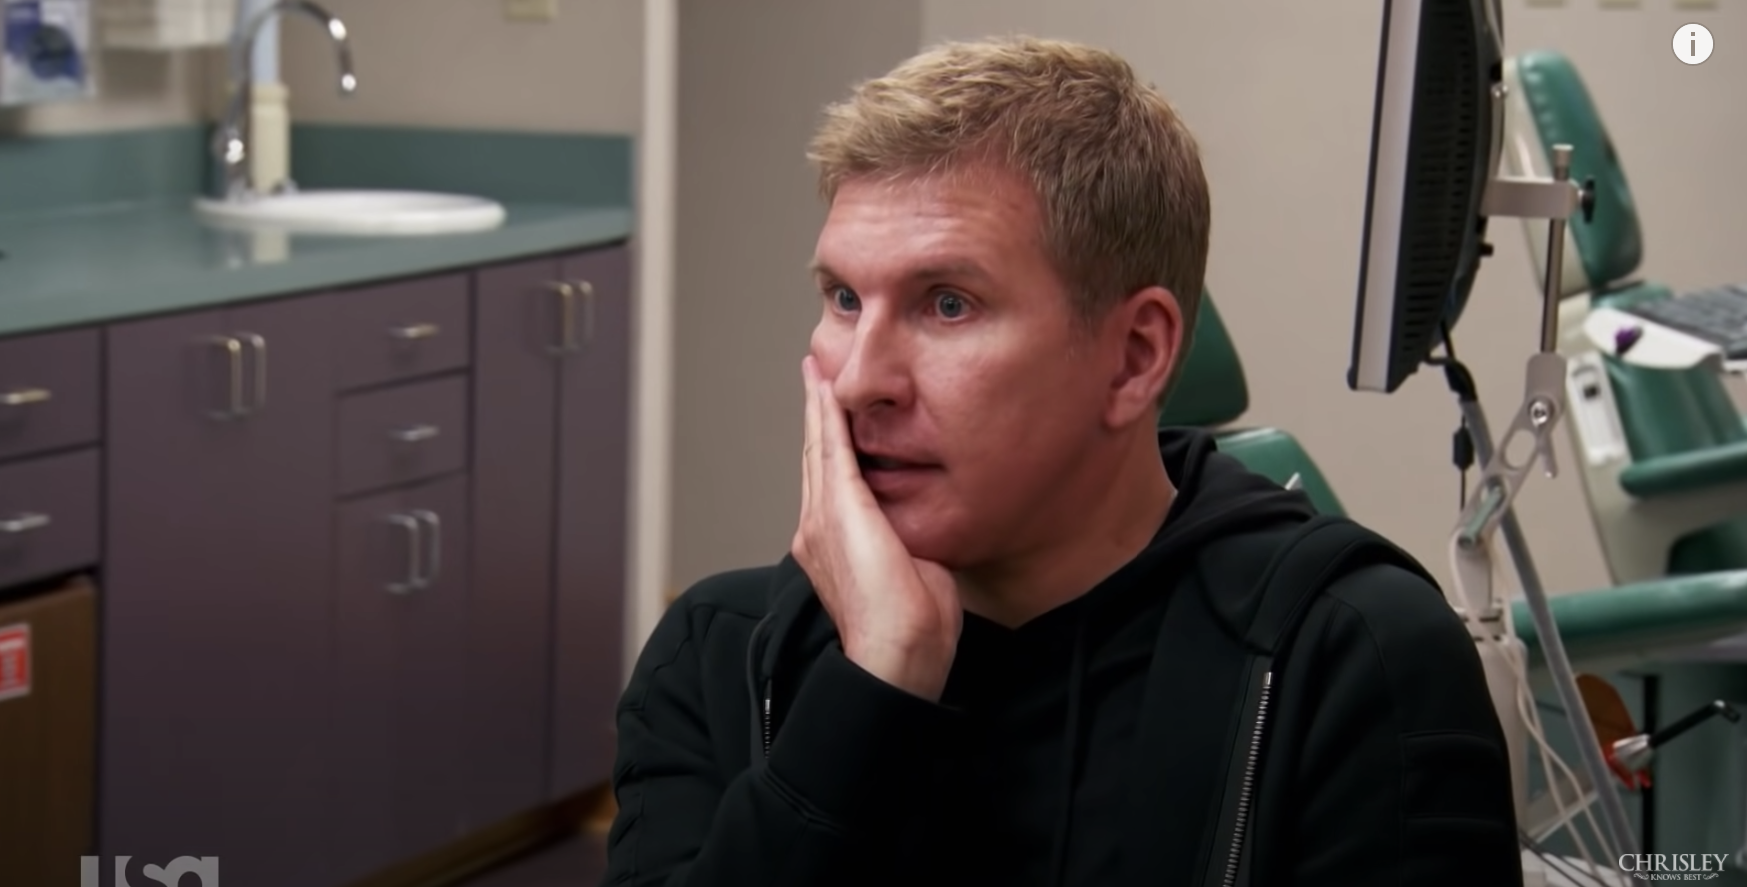 Chrisley Knows Best Todd Chrisley relationship advice